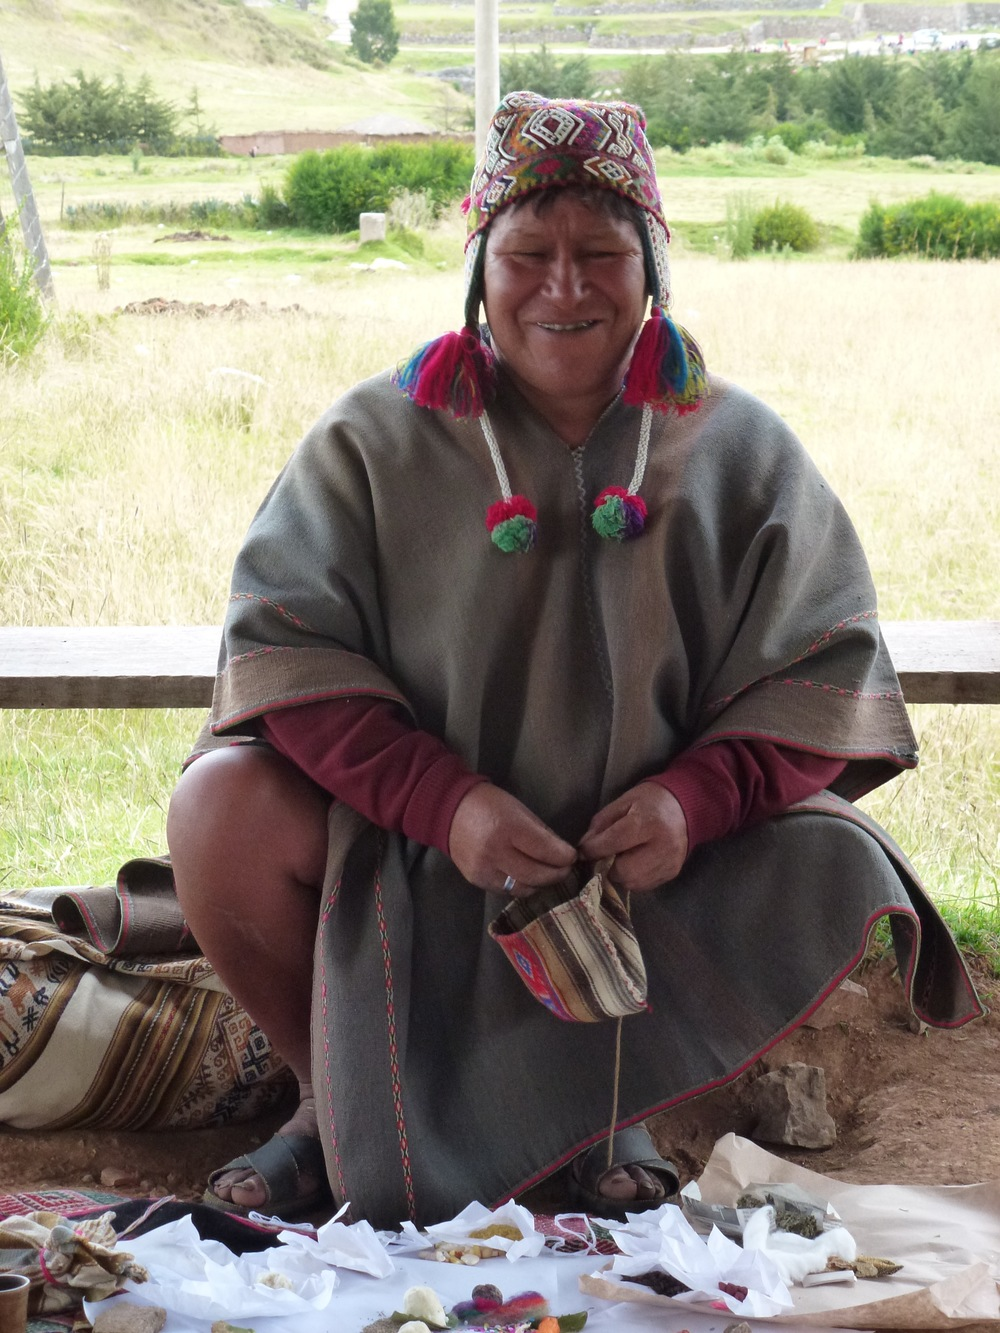 Our mestizo medicine man. He performed a curandero ceremony, an Incan healing ceremony using traditional and modern symbolism and drawing on the energy of the mountains and the earth.